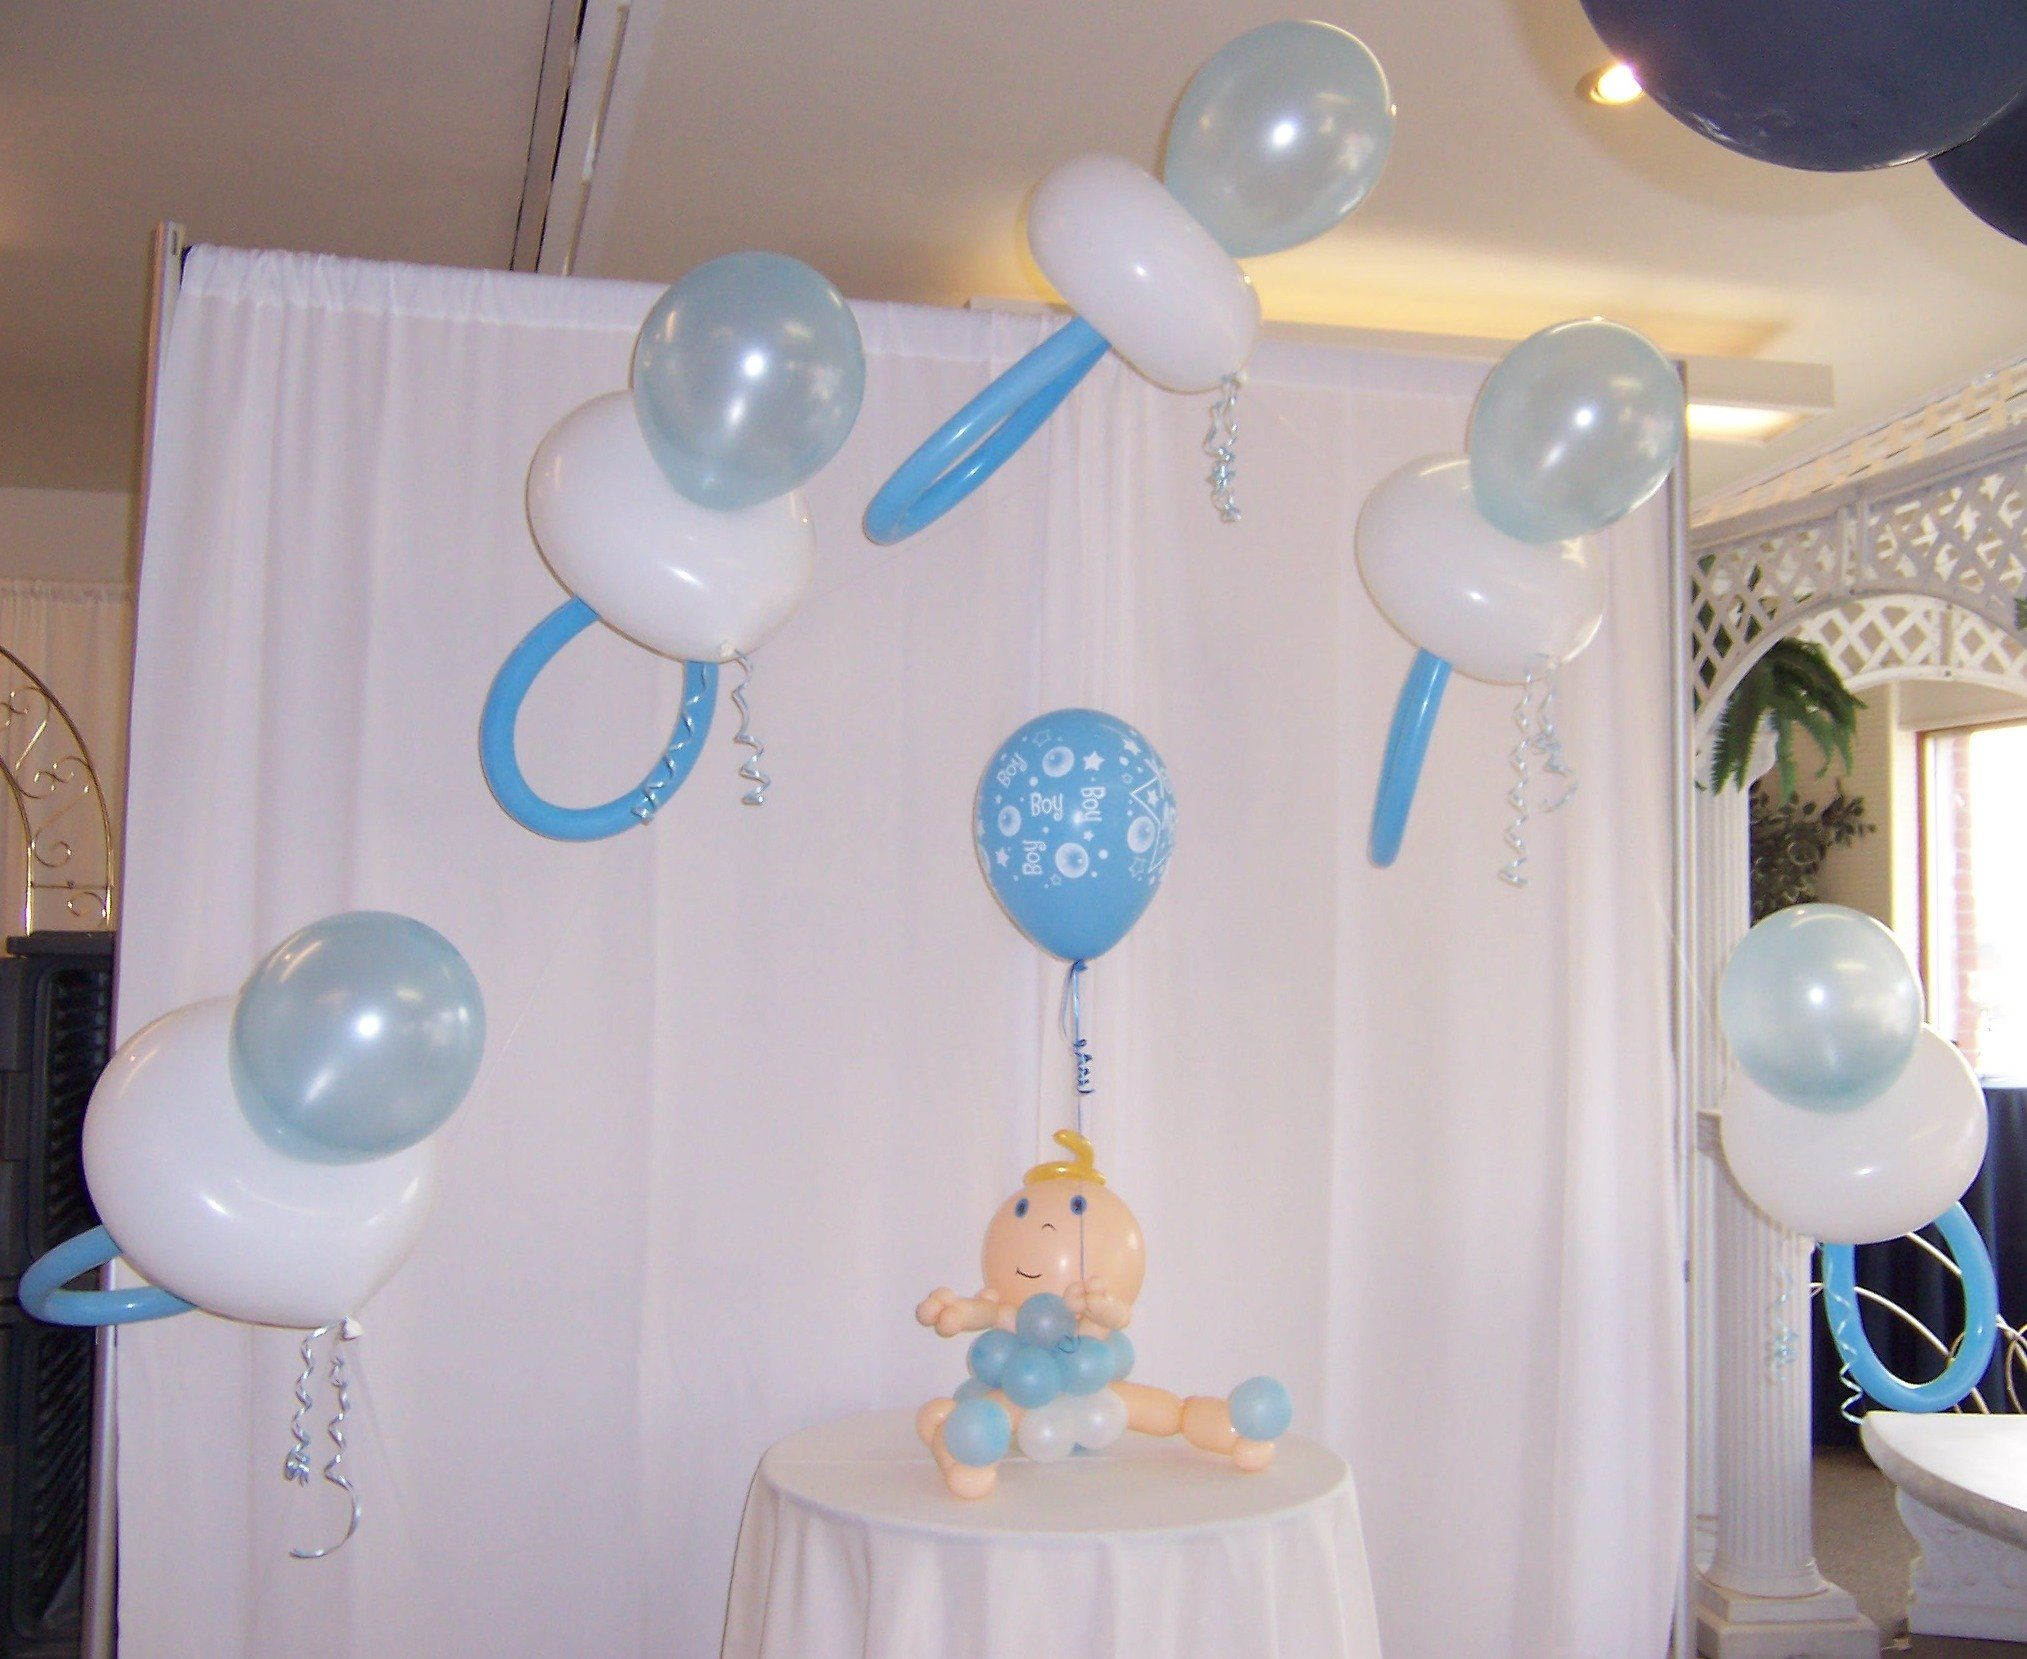 Baby Shower Balloon Decorations Hd 1080p 12 Baby Shower Balloon Decorations Baby Shower Balloons Balloon Baby Shower Centerpieces